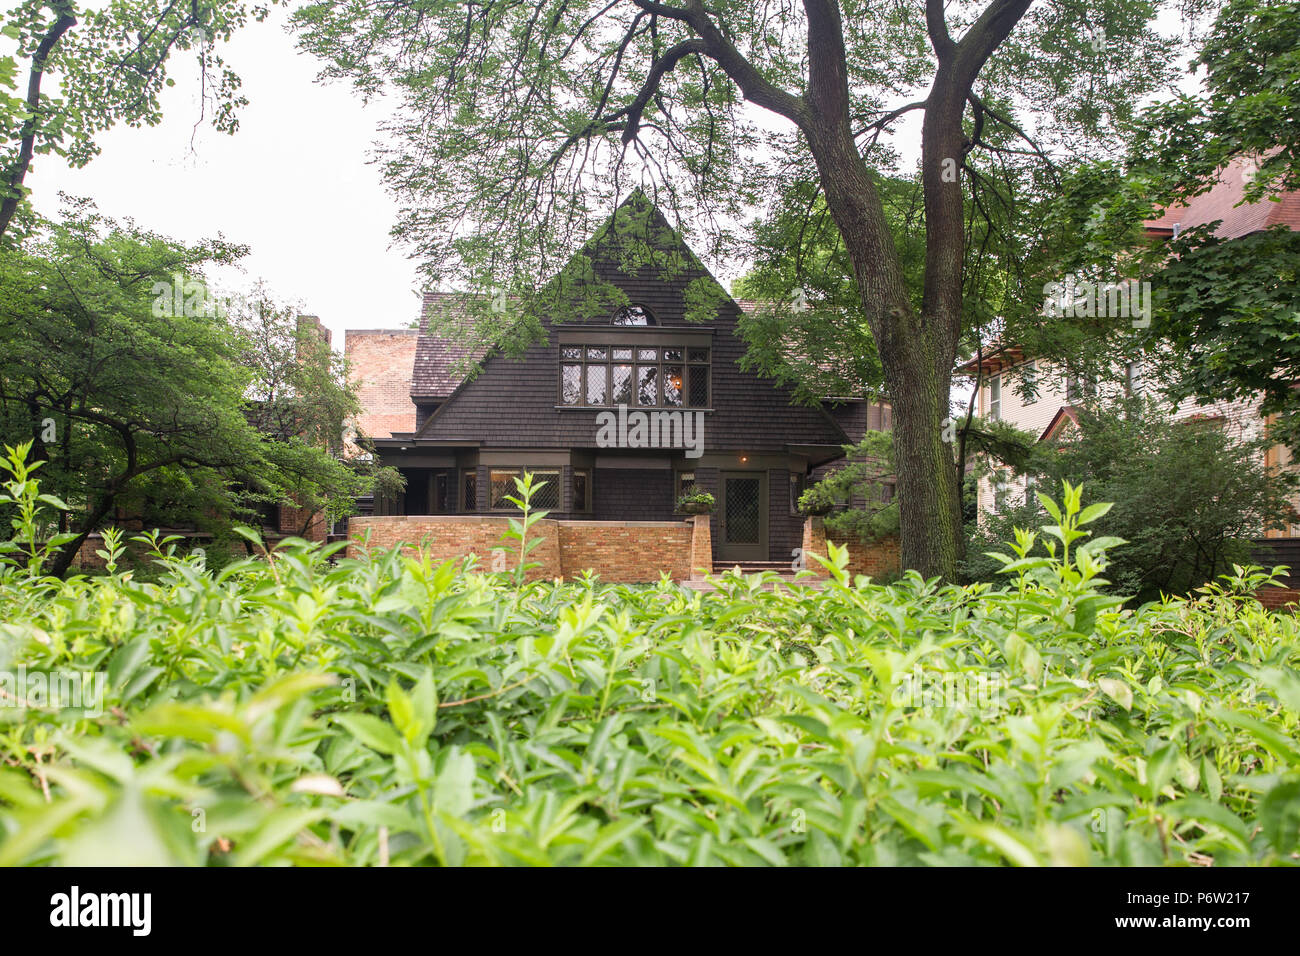 OAK PARK, ILLINOIS - JUNE 23, 2018: View of home and studio of influential architect Frank Lloyd Wright as seen from the outside. - Stock Image